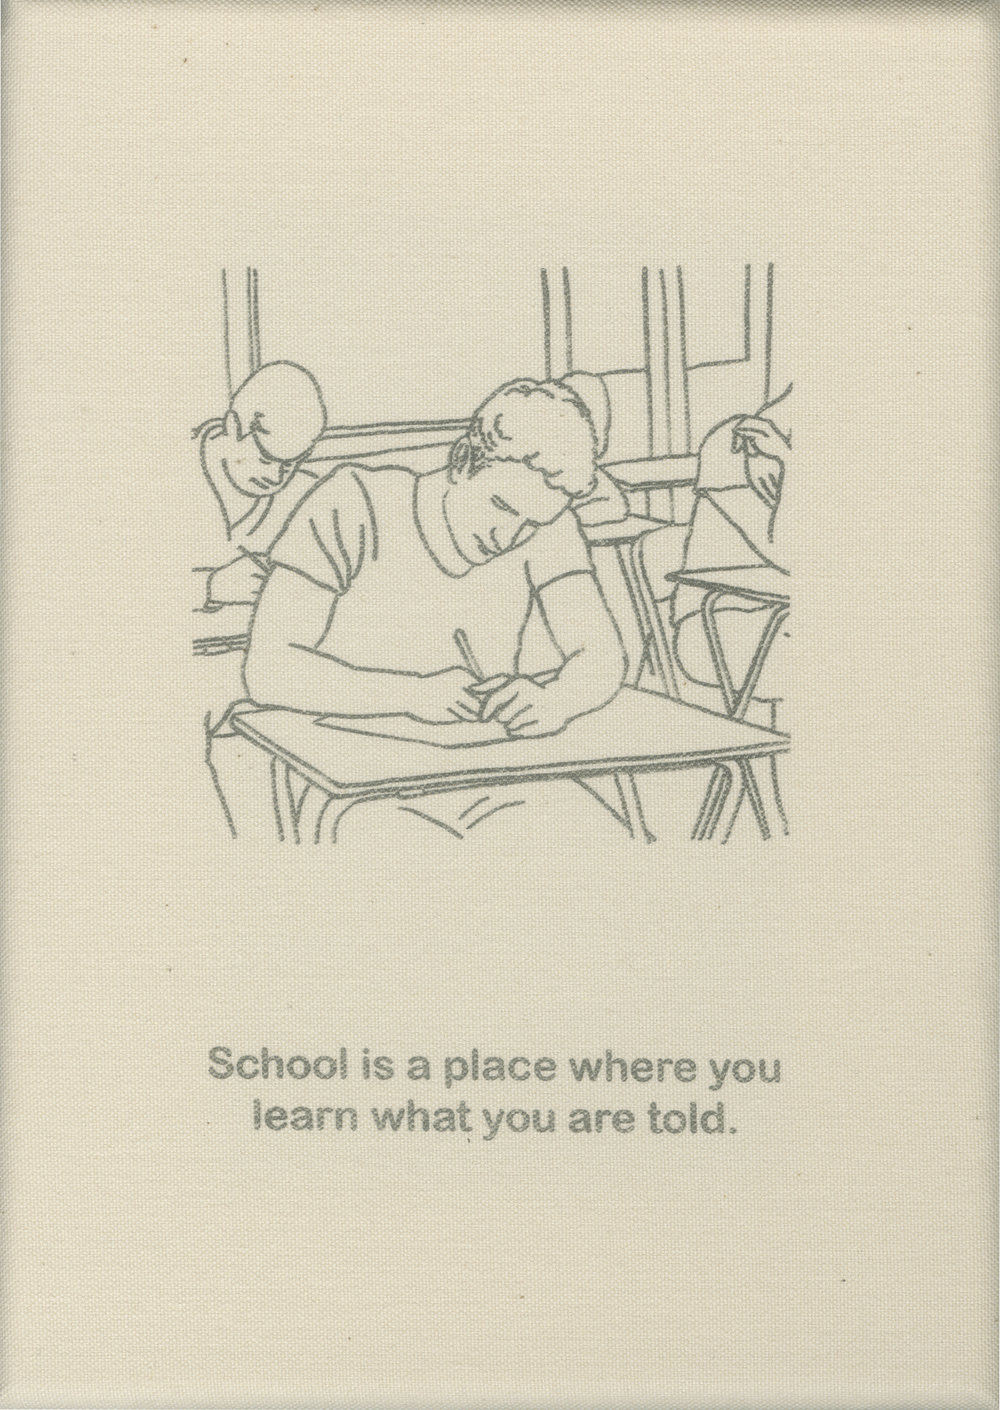 School is a place where you learn what you are told.